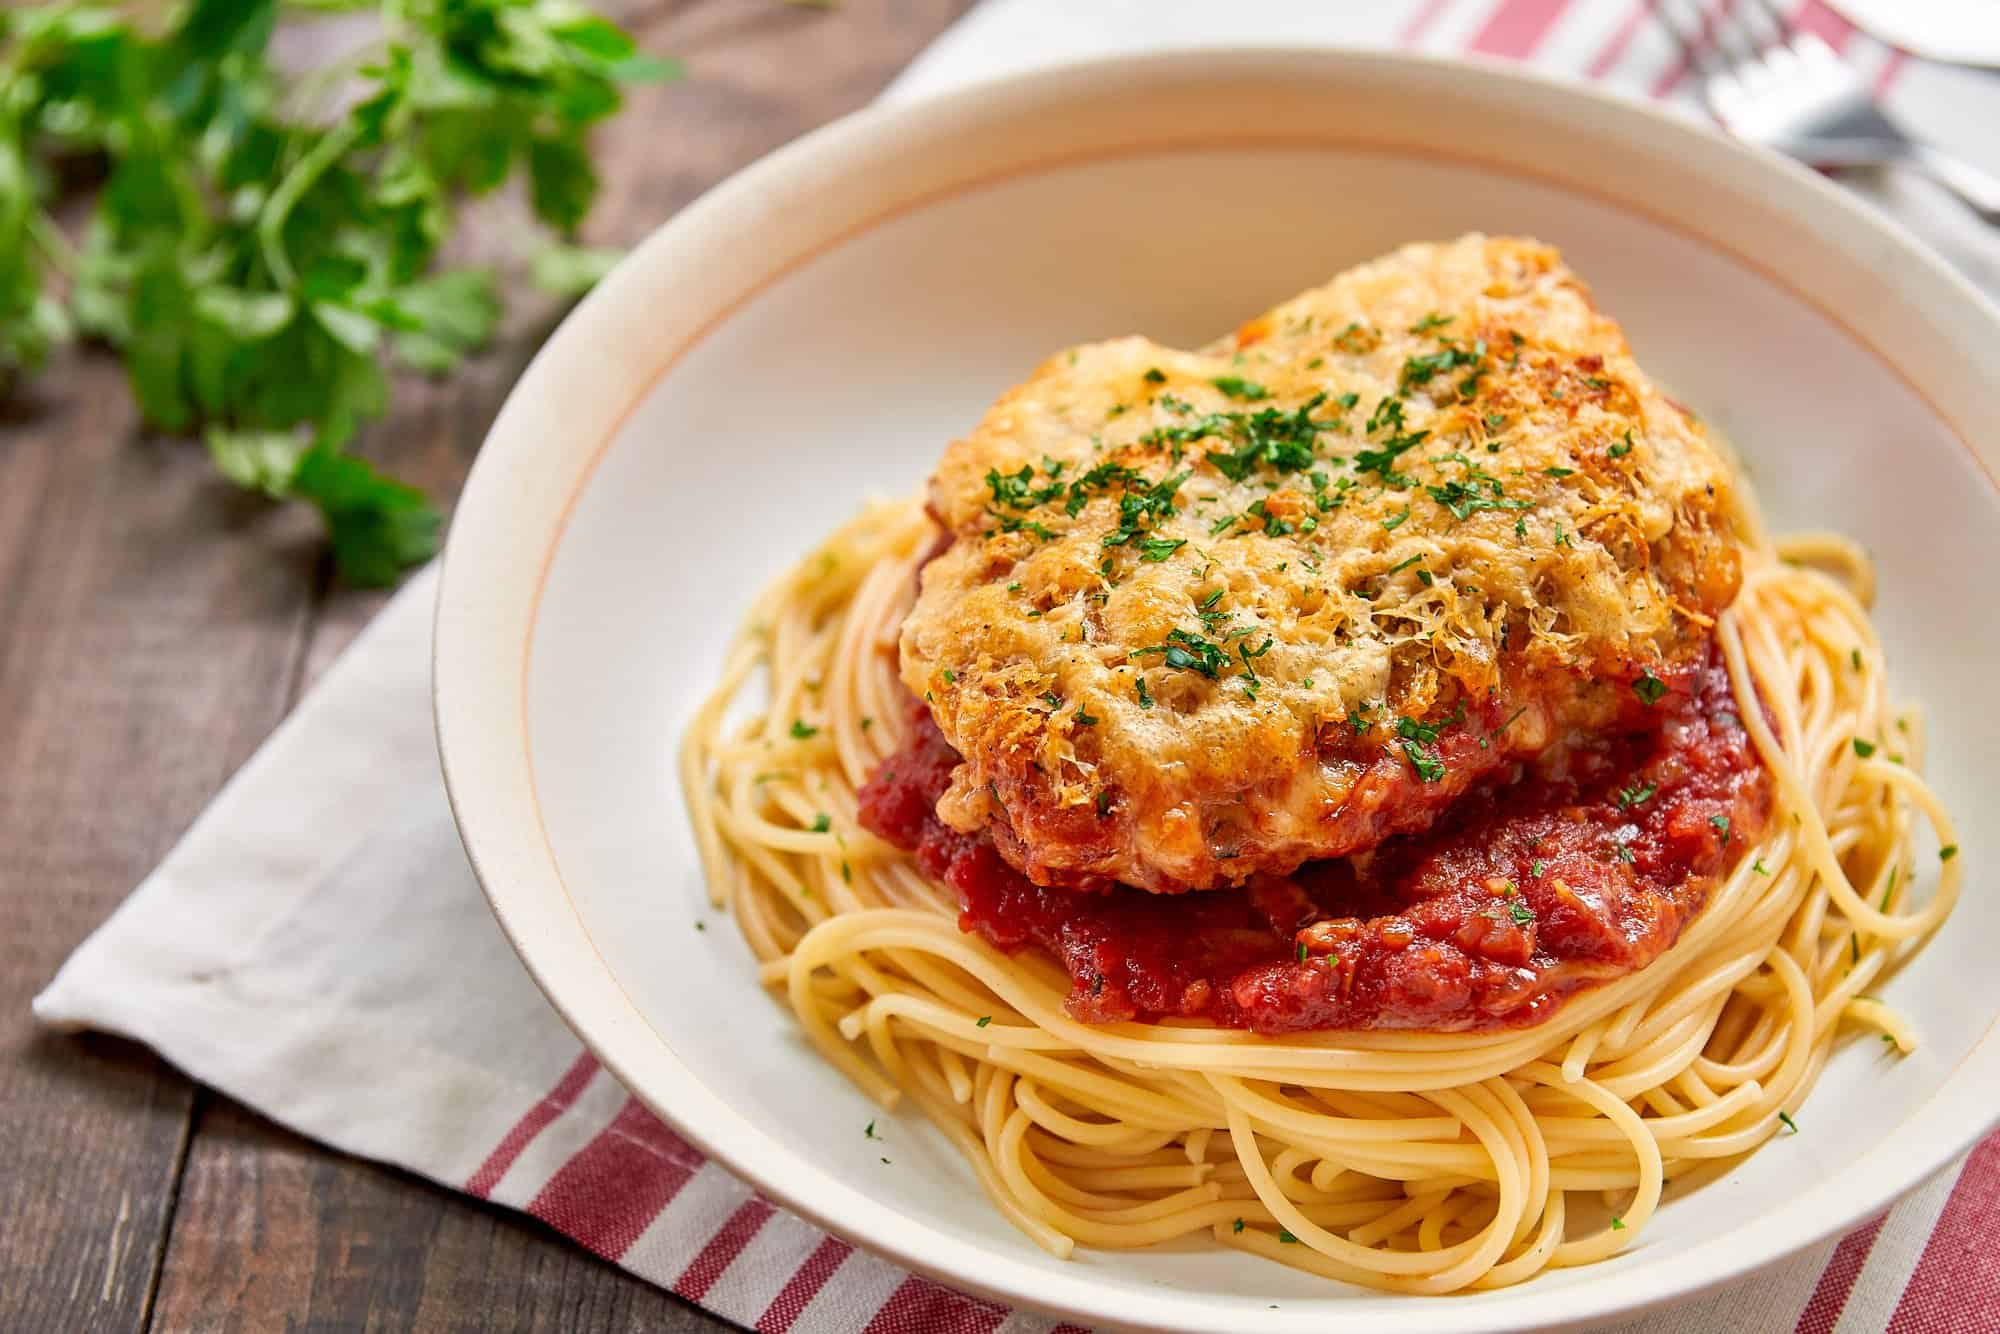 With crisp seasoned breadcrumbs and cheese on top and savory sauce on the bottom, this easy chicken parmesan is irresistably good.